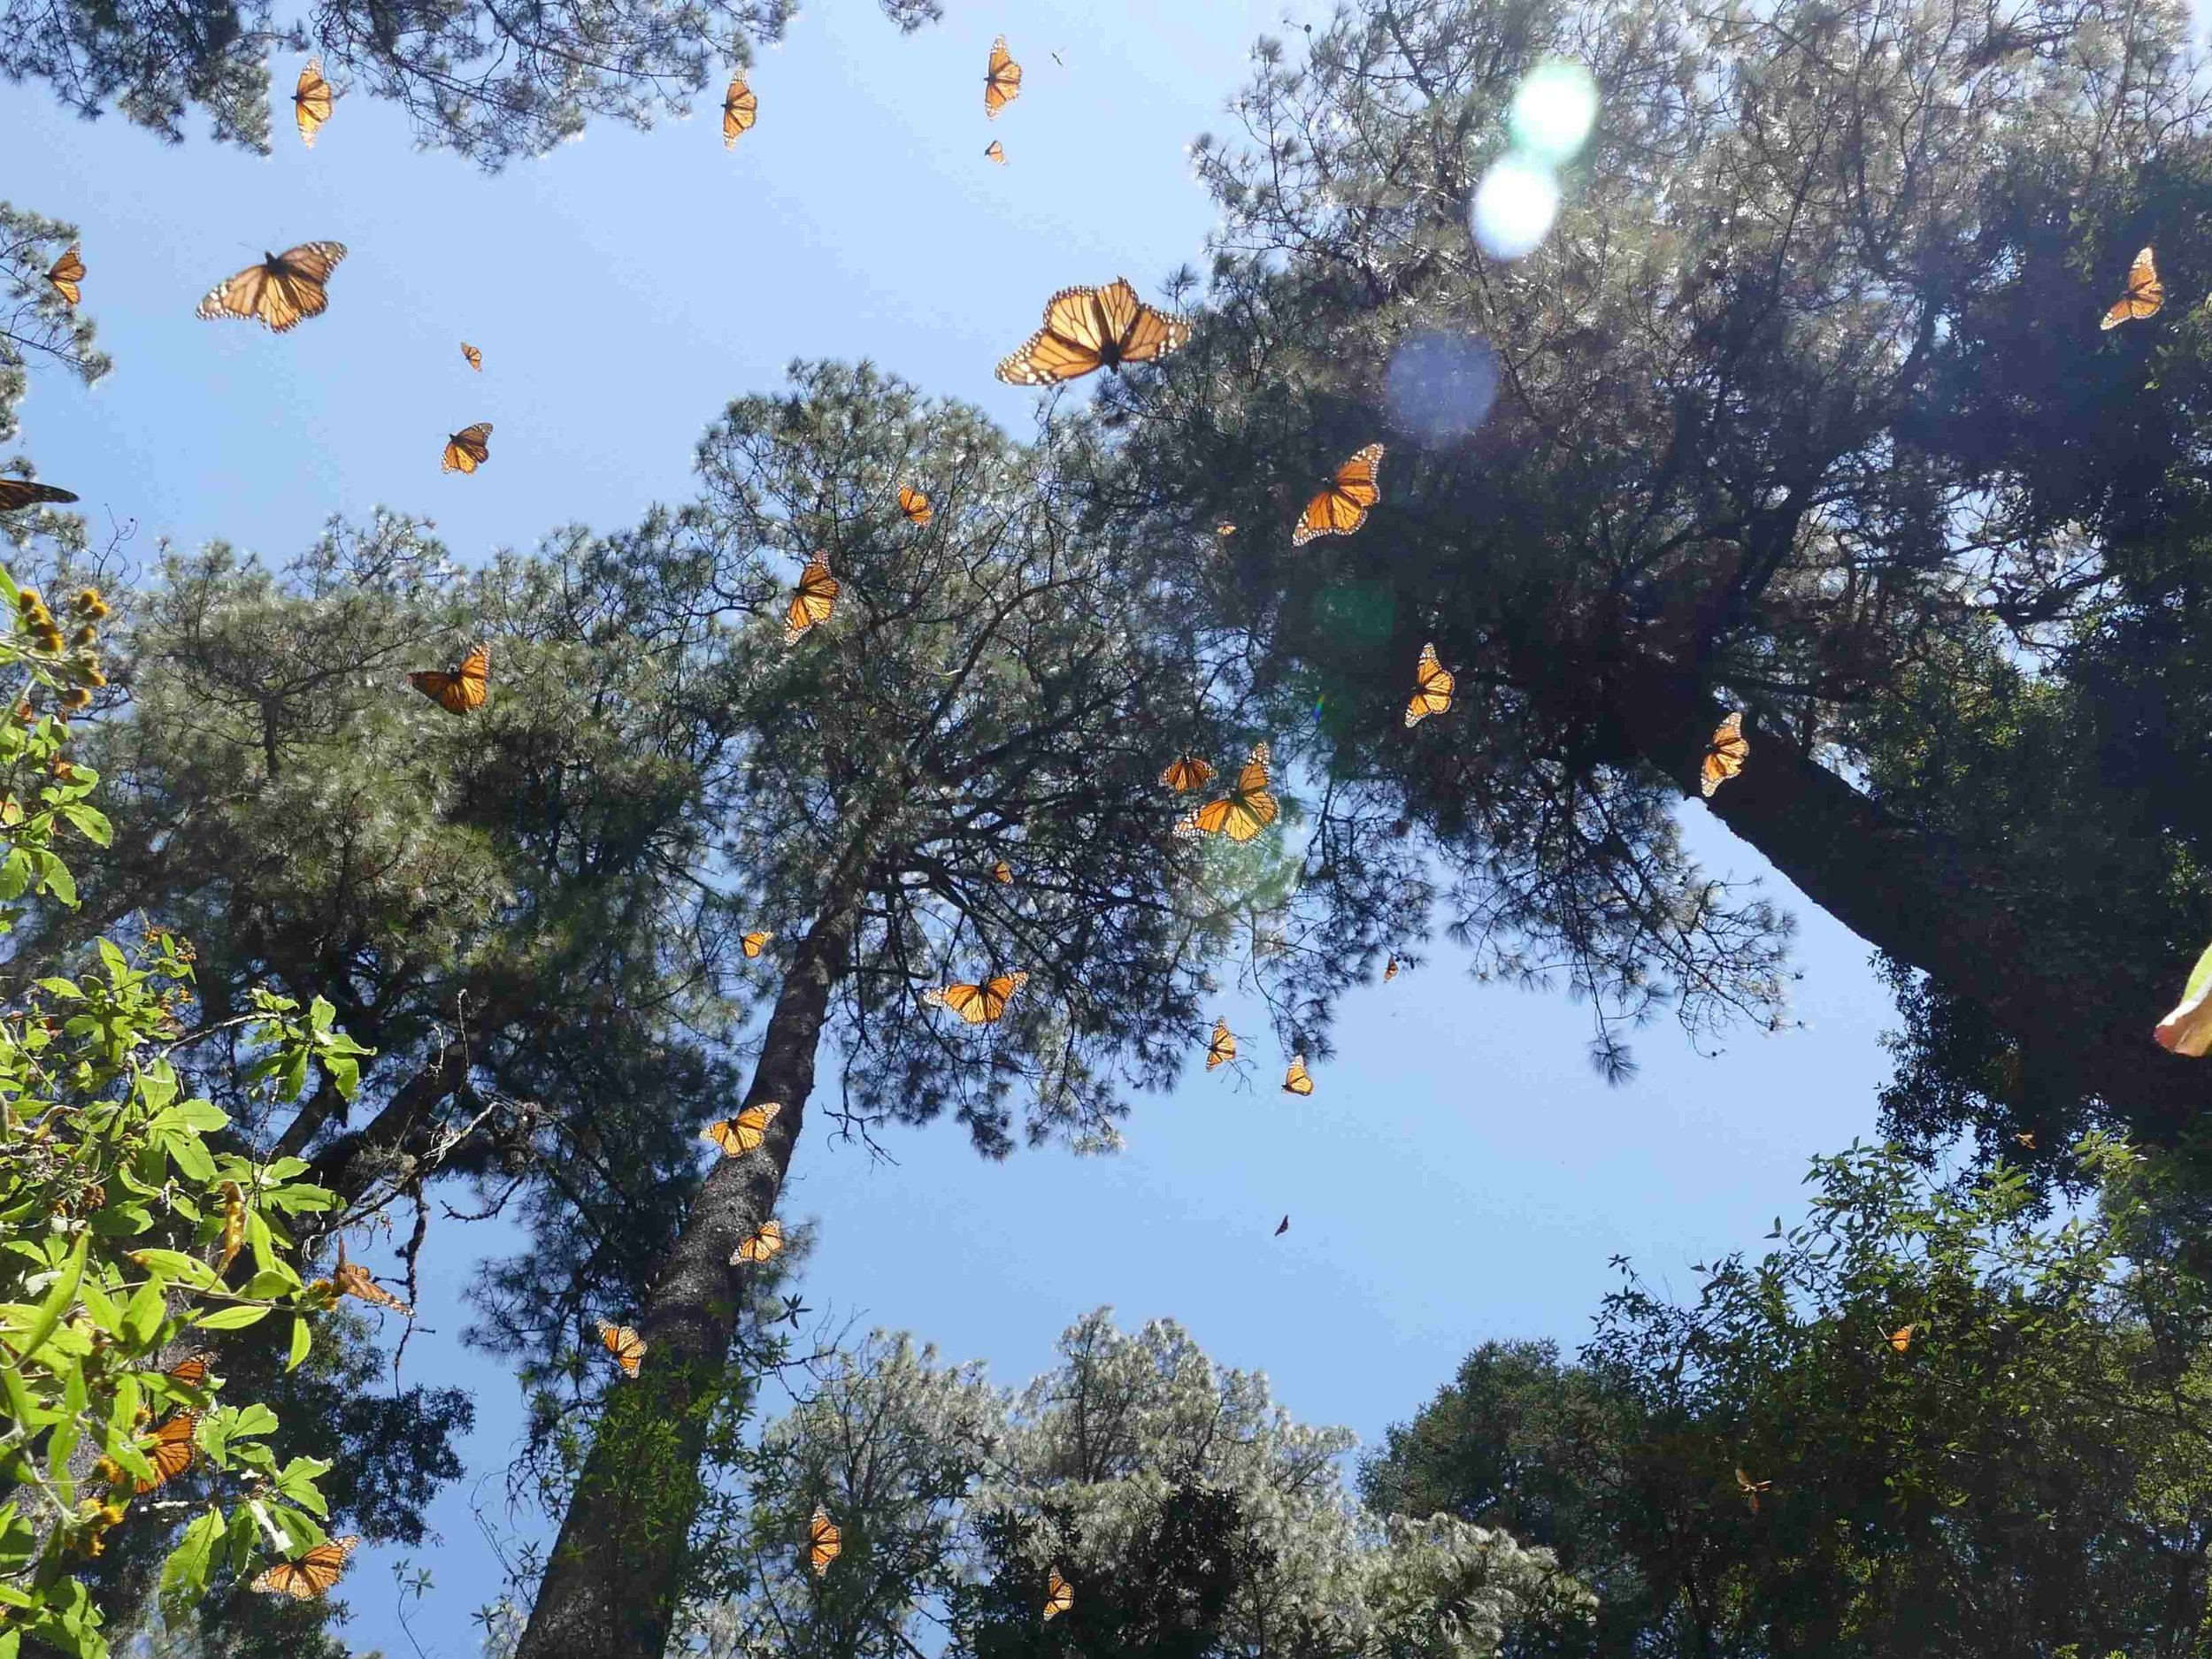 When the sun came out the monarchs began to fly.